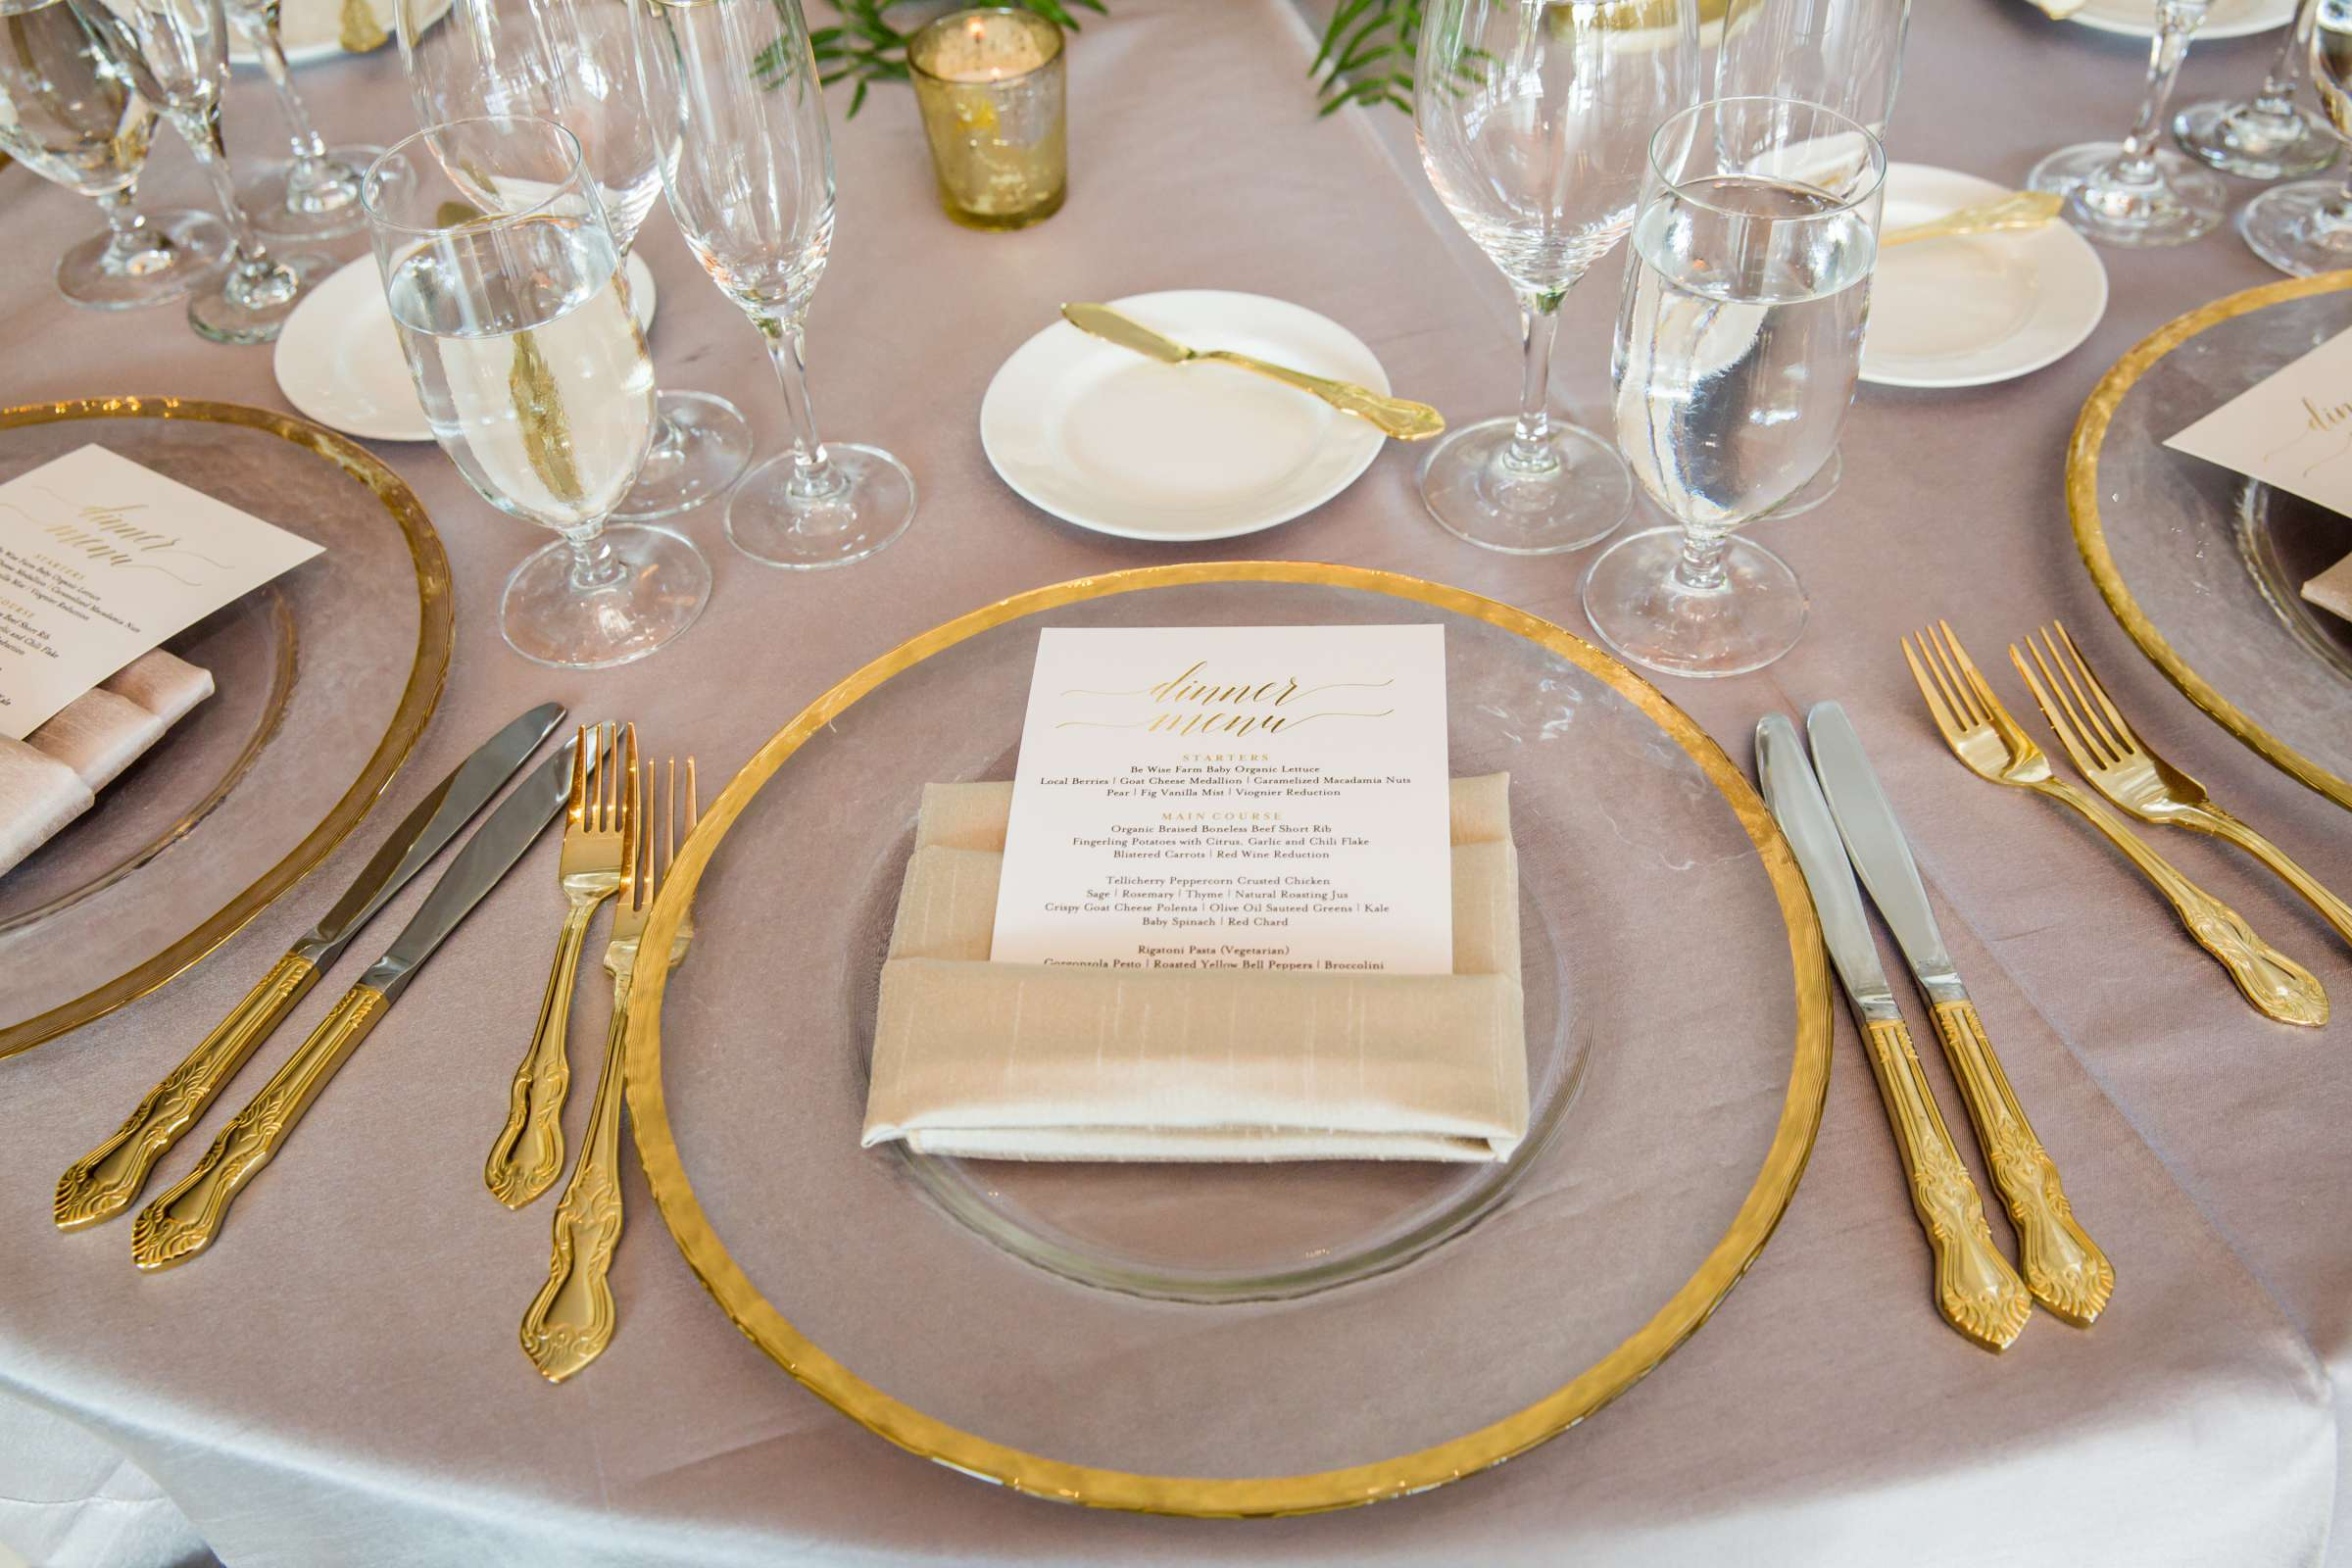 Scripps Seaside Forum Wedding coordinated by Lavish Weddings, Cindy and Justin Wedding Photo #381979 by True Photography